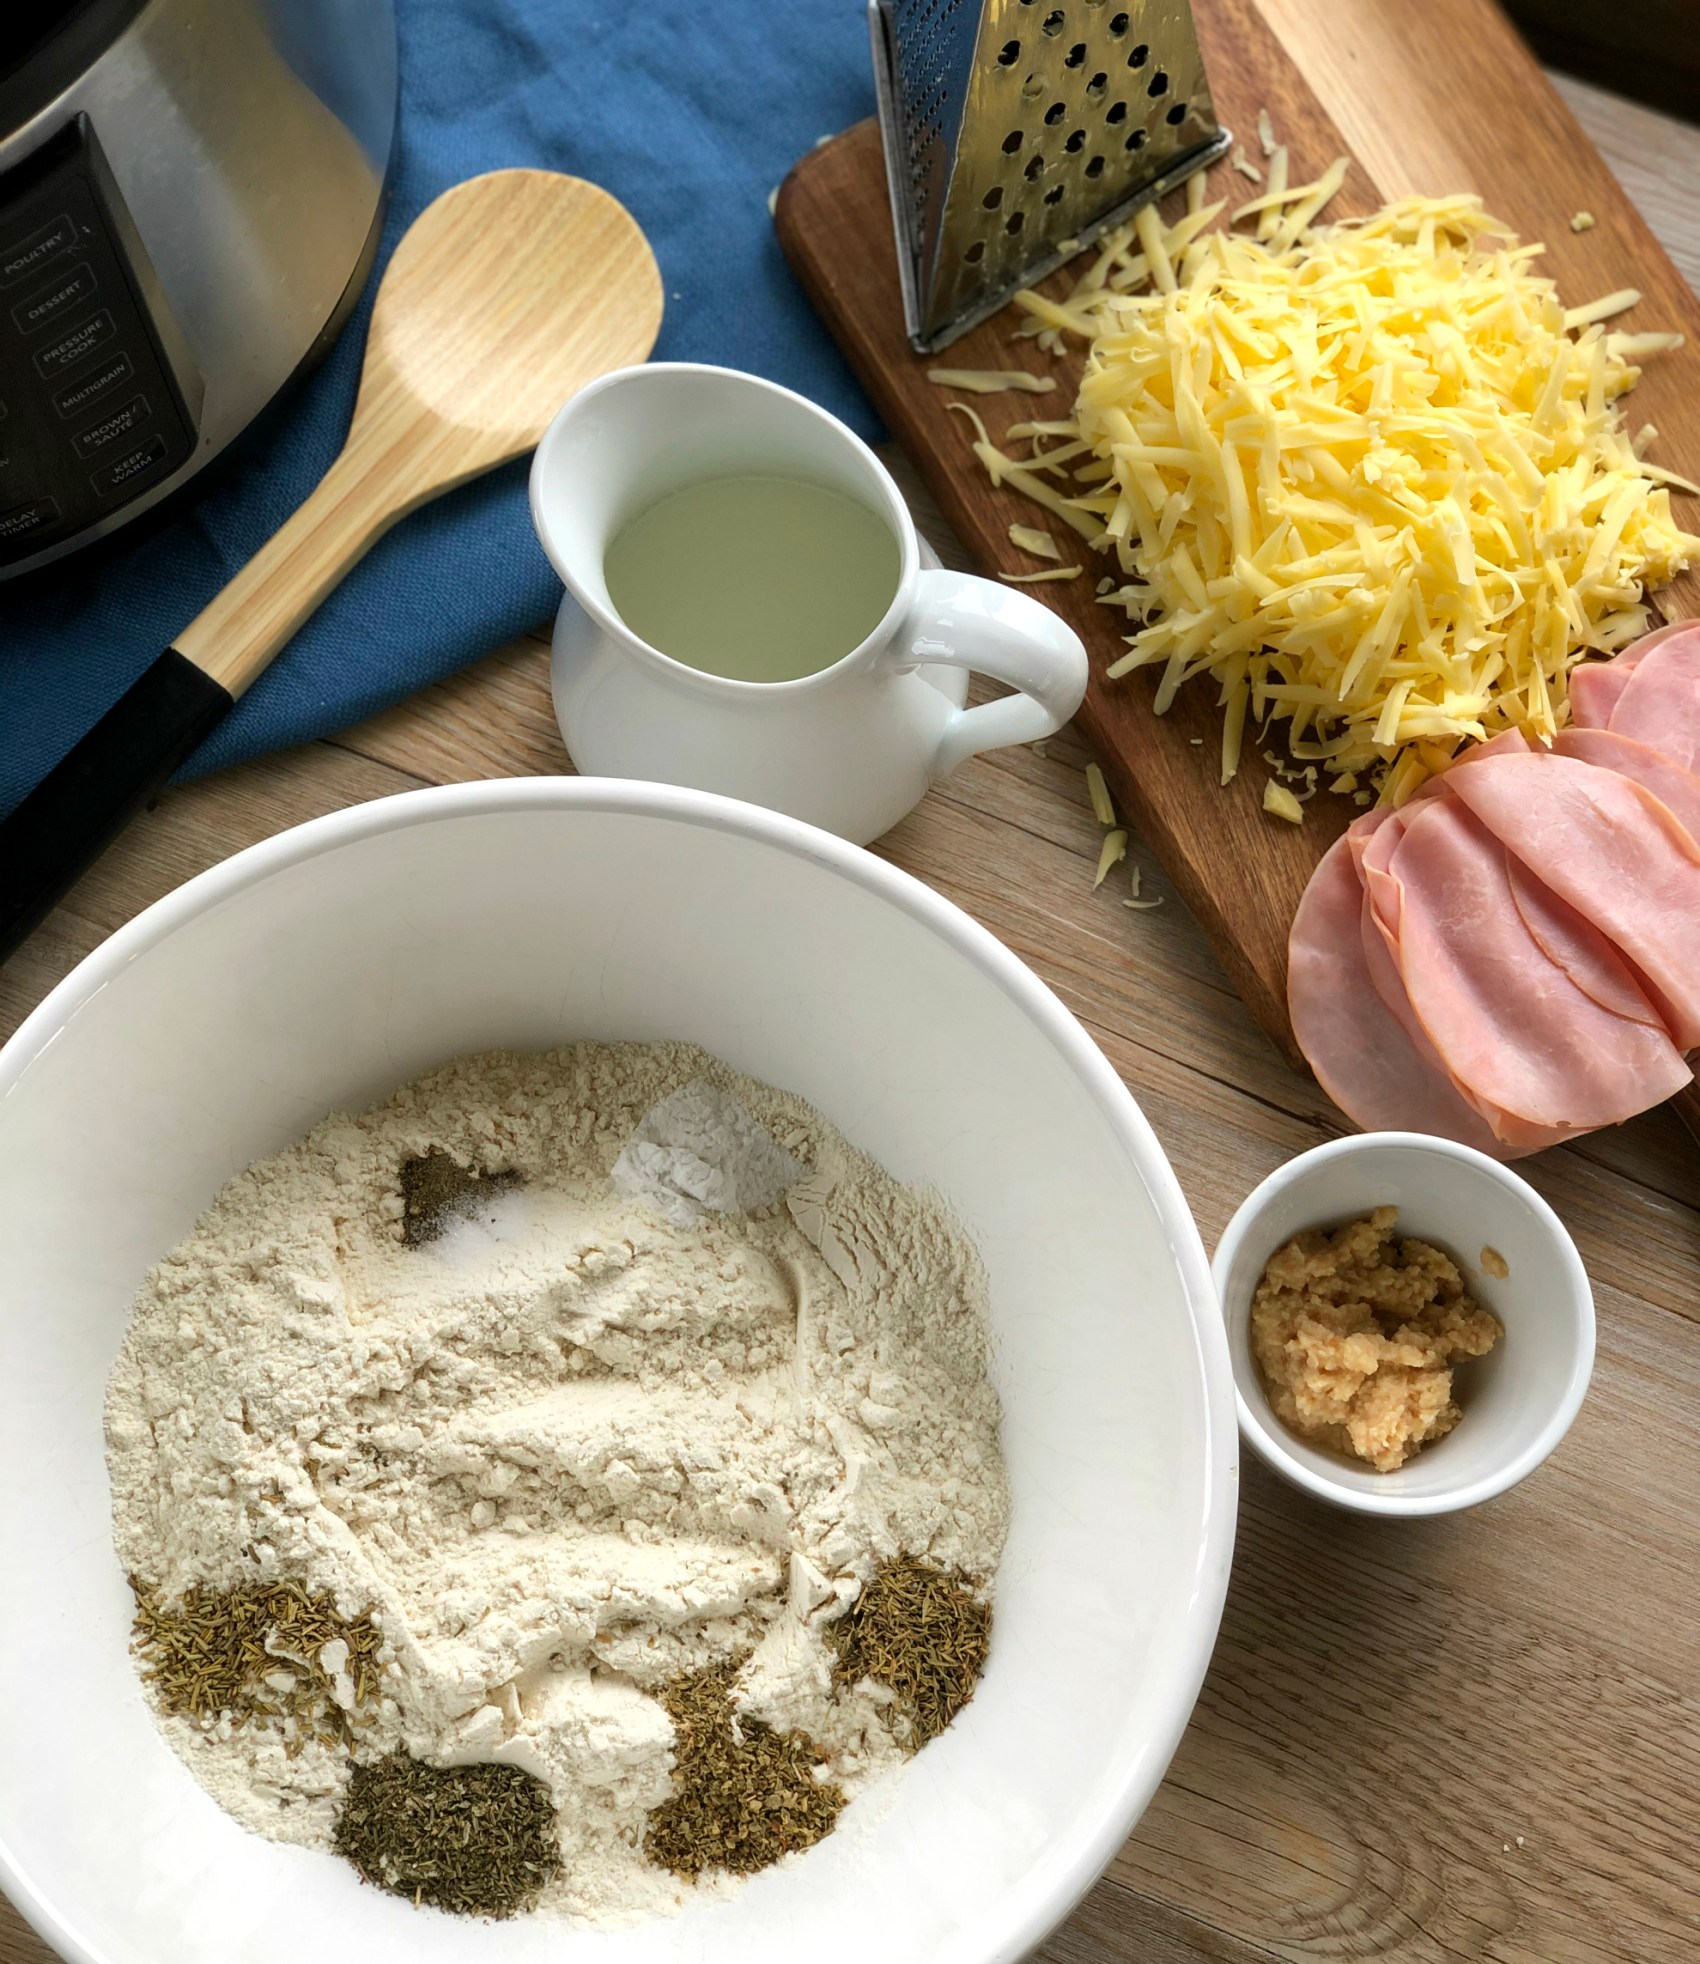 Ingredients for Slow Cooker Bread No Yeast